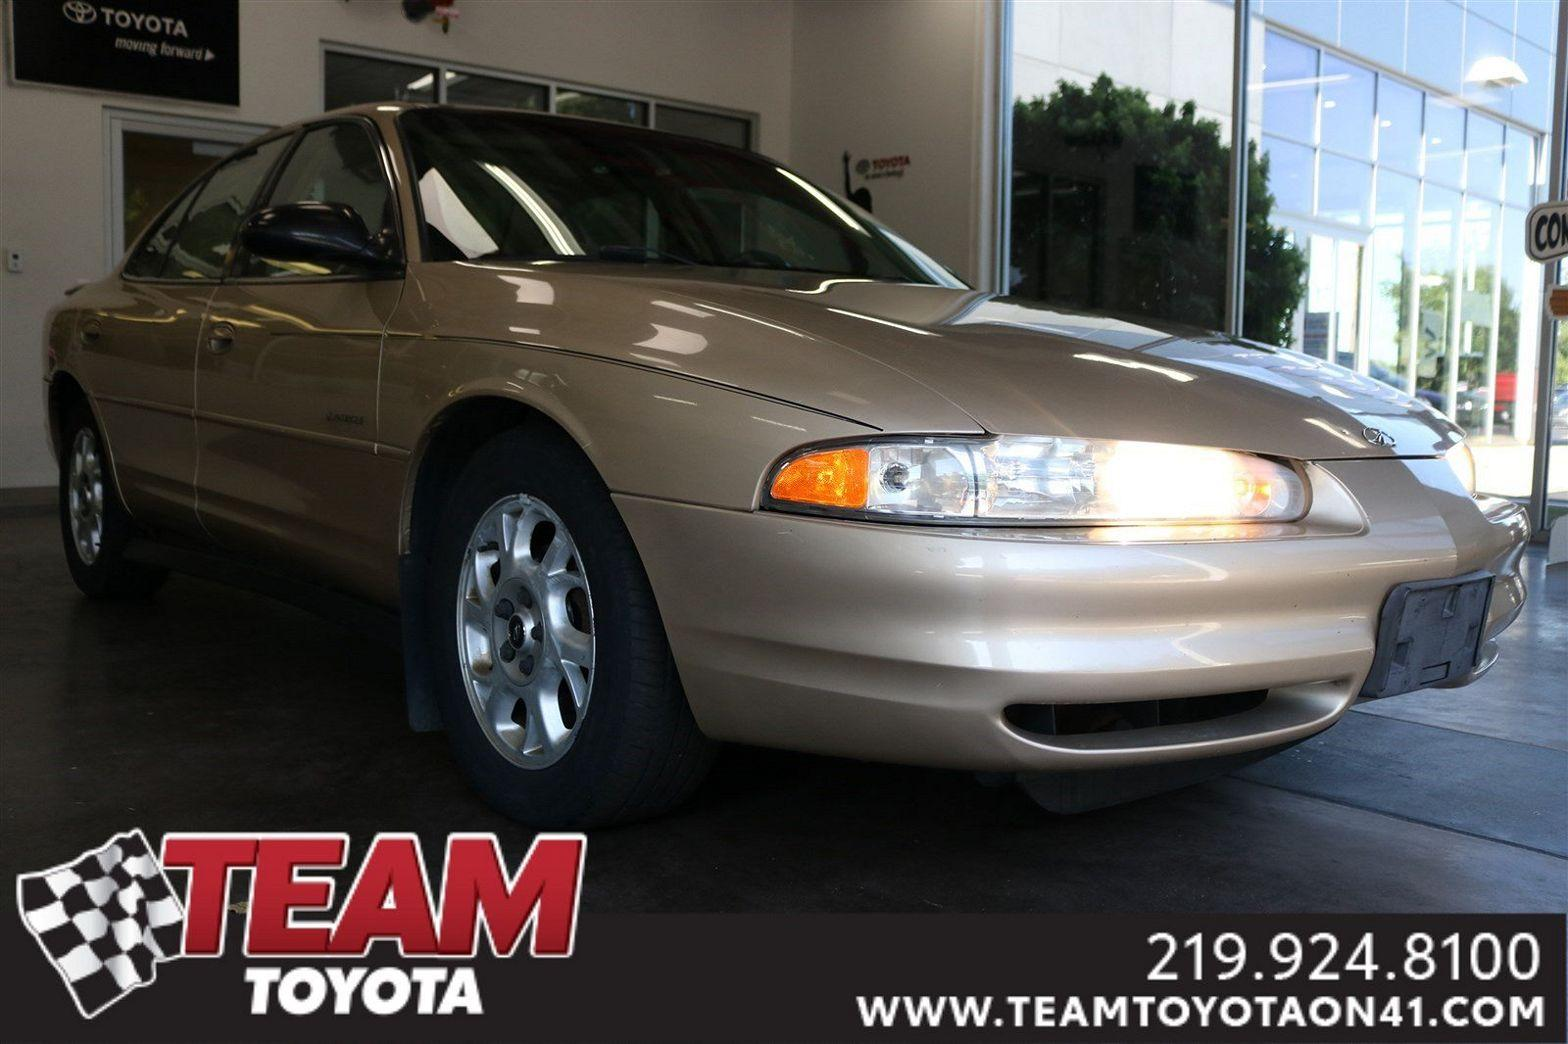 2001 Oldsmobile Intrigue $1377